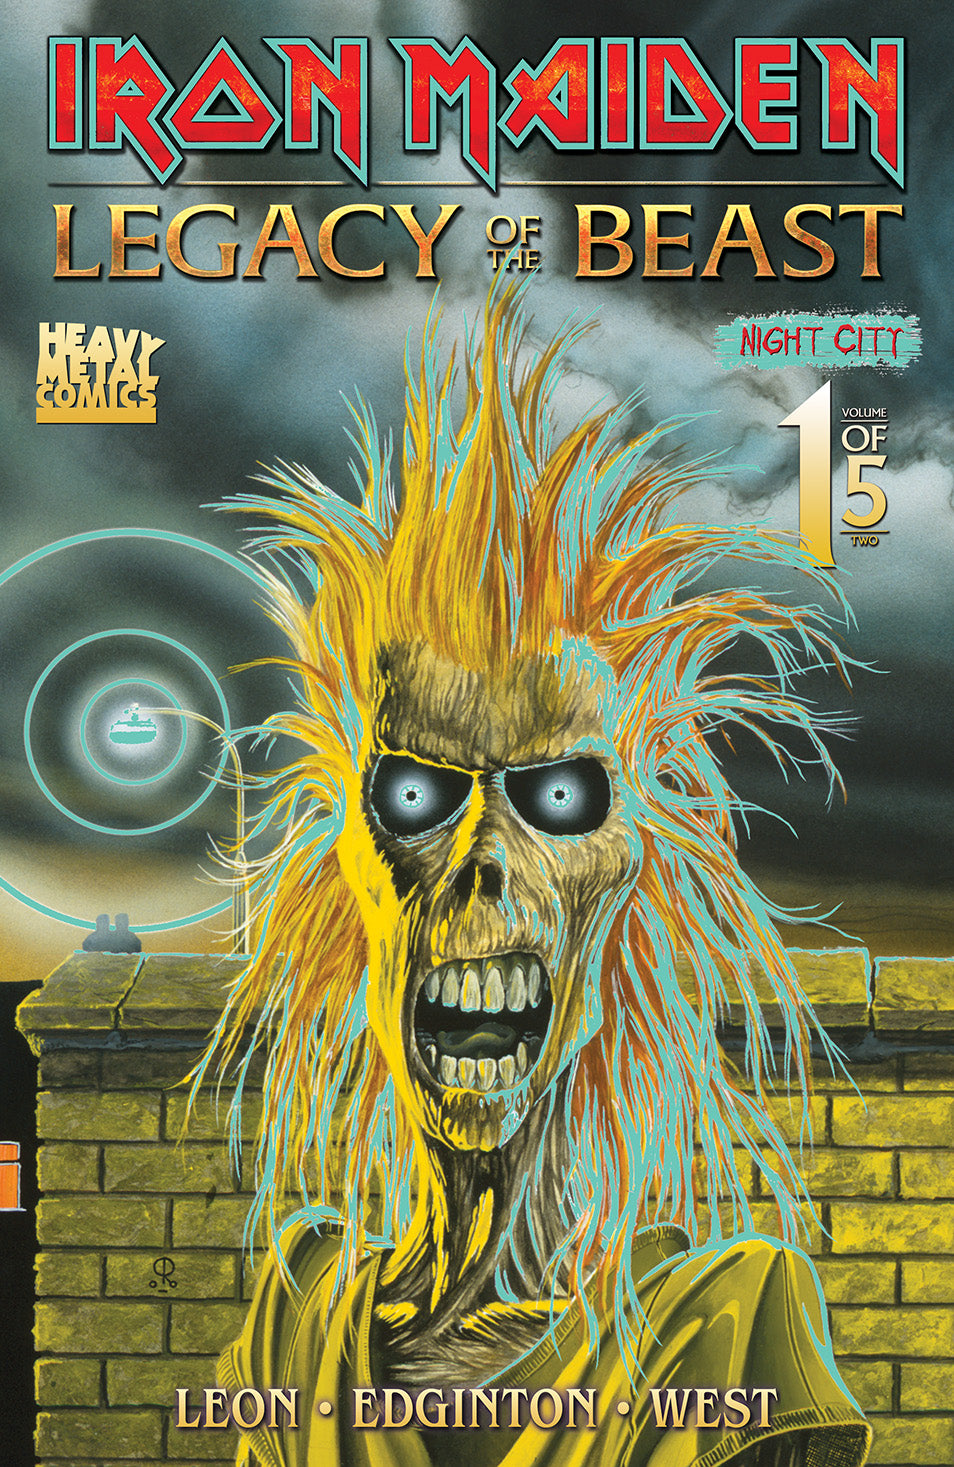 SIGNED (outside cover) San Diego Comic Con Exclusive Iron Maiden: Legacy of the Beast Night City #1 - Glow-In-The-Dark Cover - Signed by Kevin West